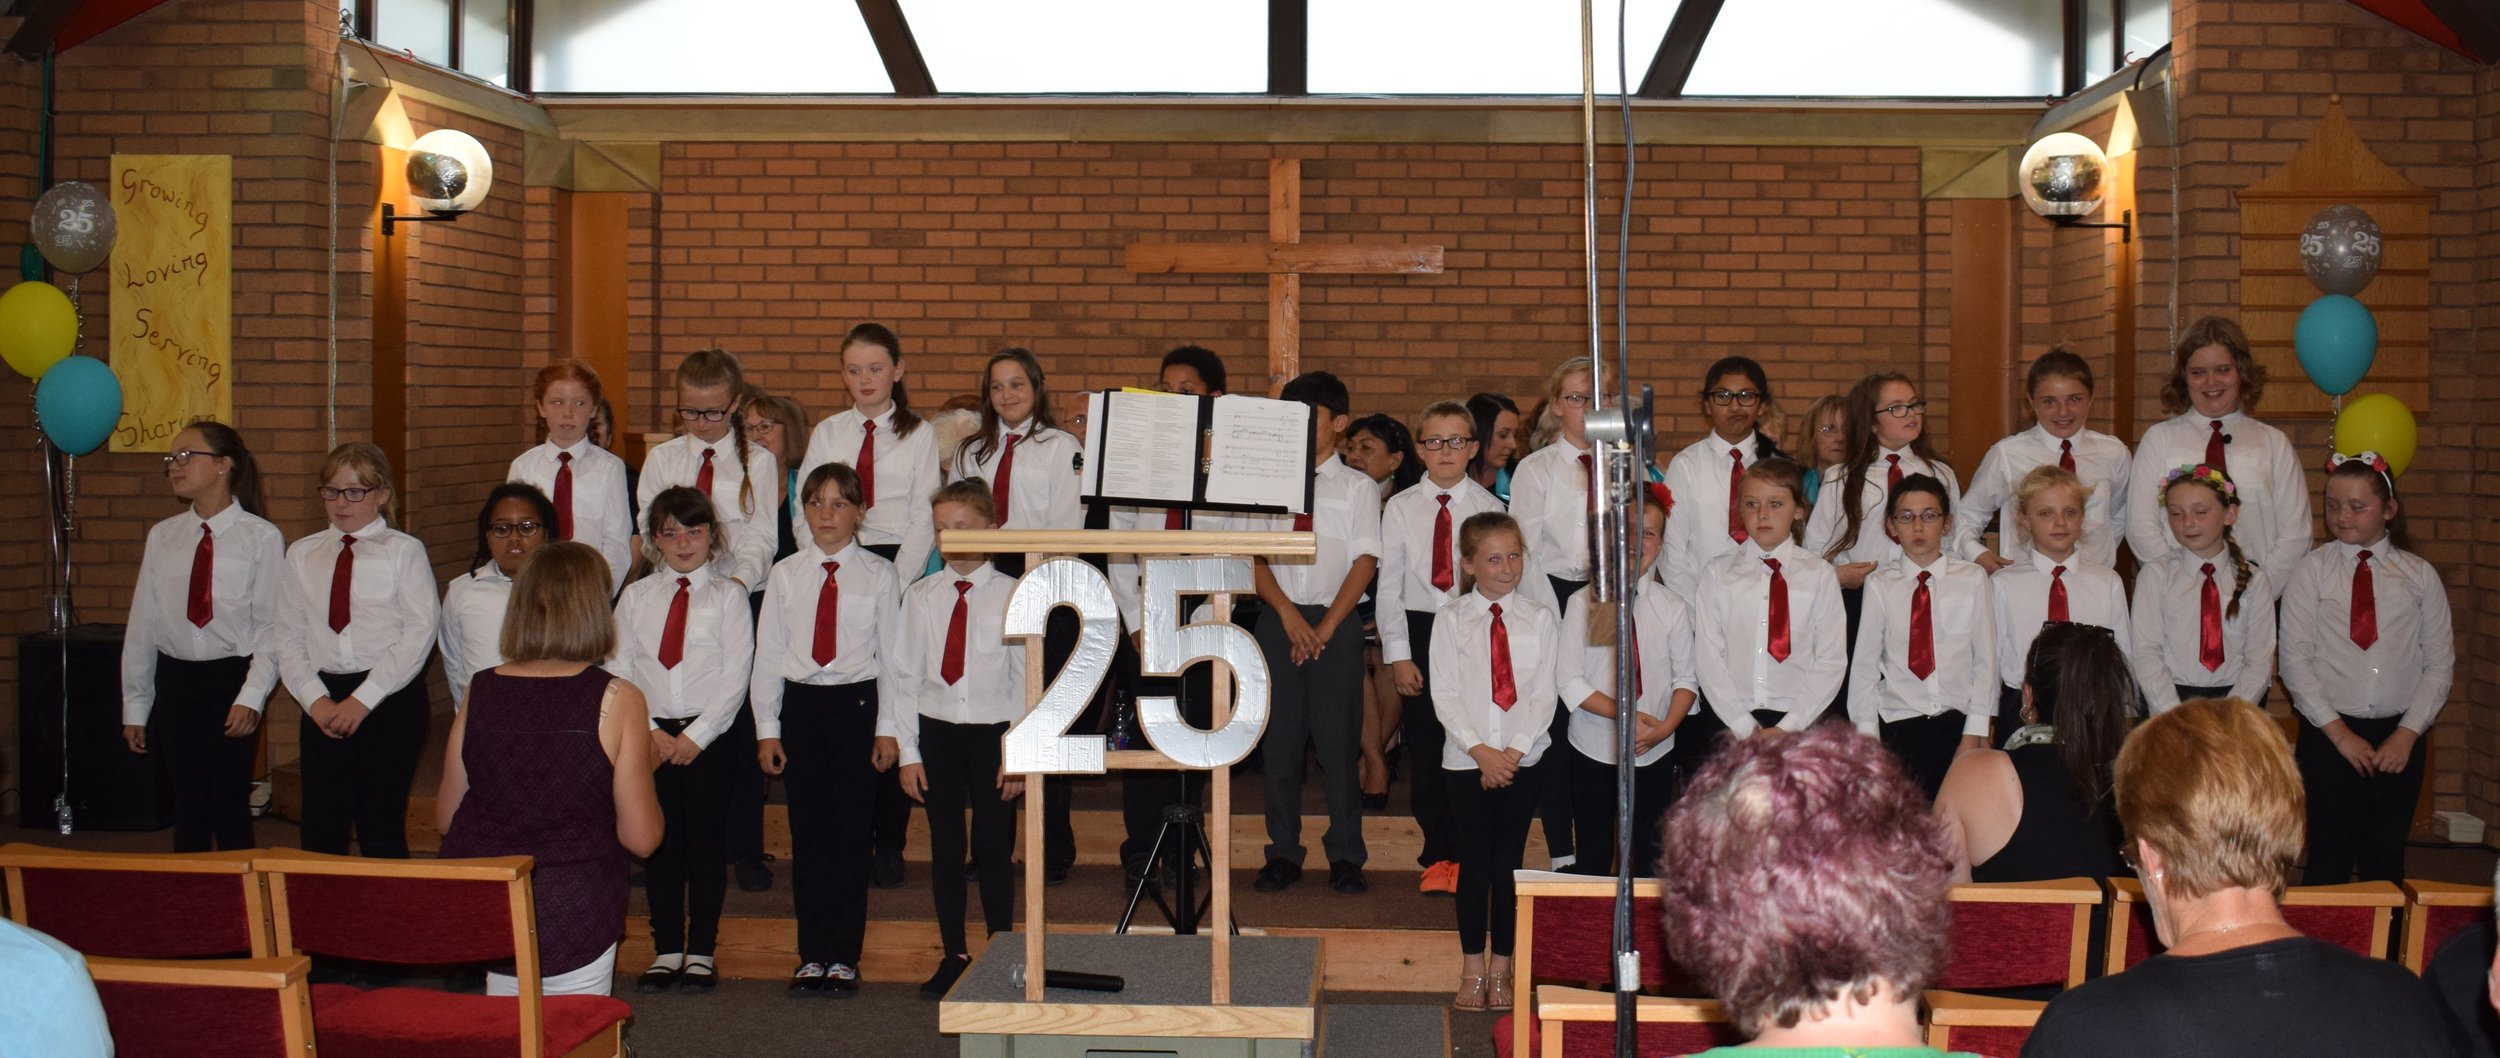 The Red Tie Choir led by Anne Sargent and Rosie Griffiths